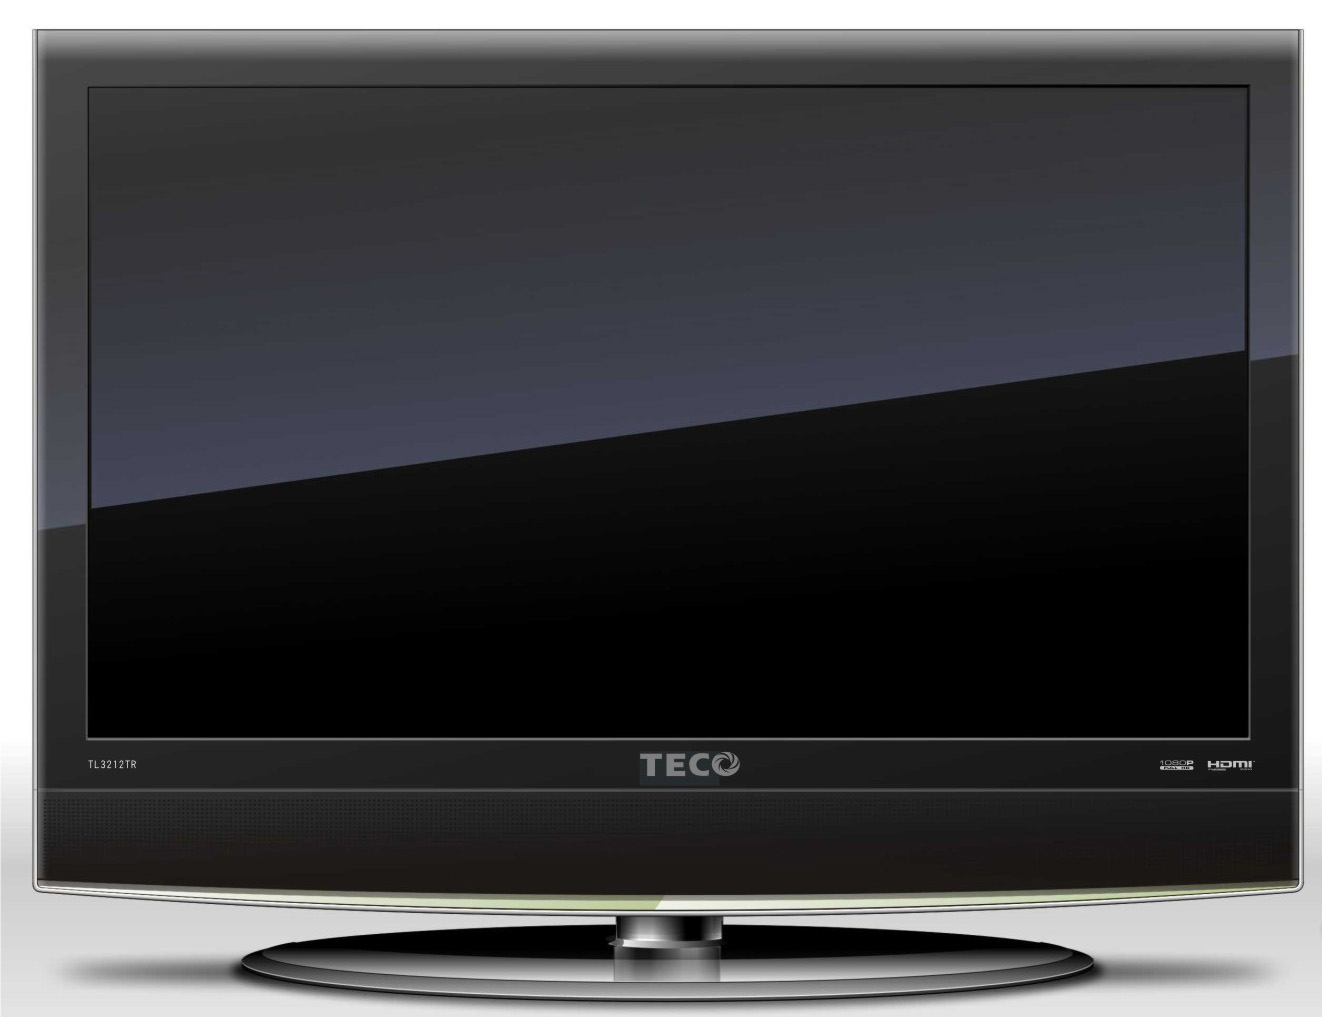 LCD TV / TECO ELECTRIC & MACHINERY CO., LTD.